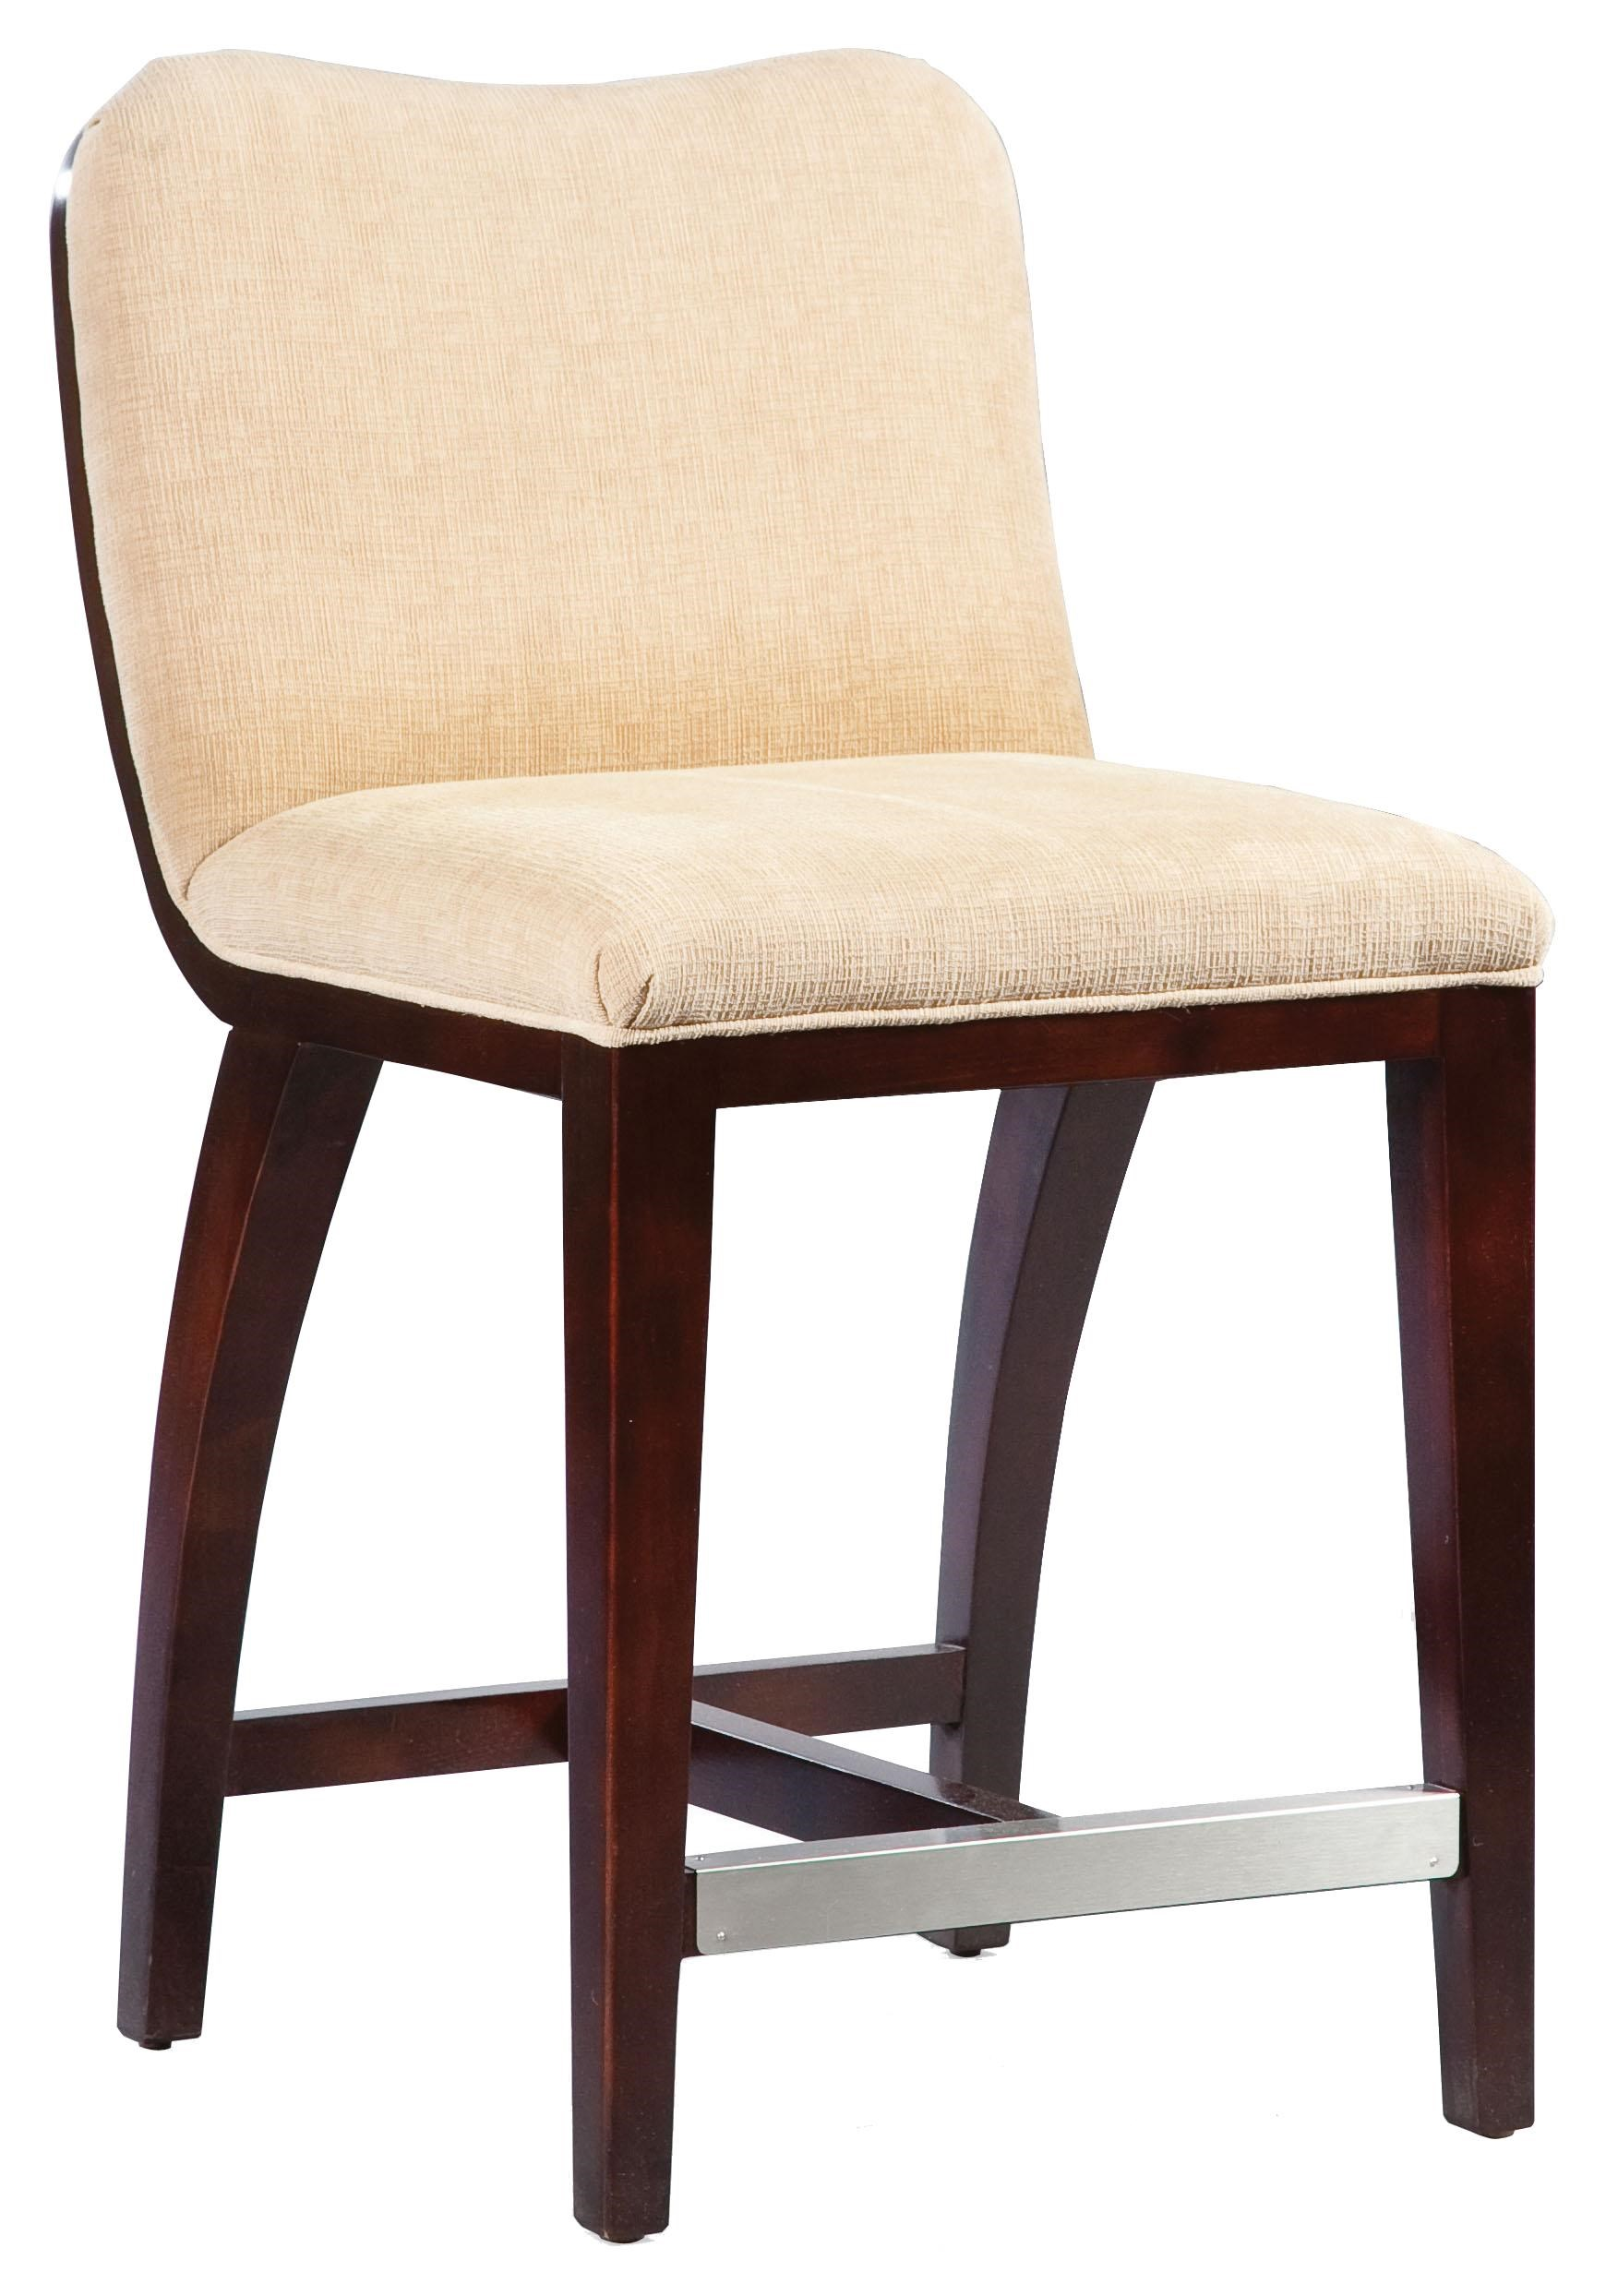 Fairfield BarstoolsHigh End Counter Stool With Wood Accents ...